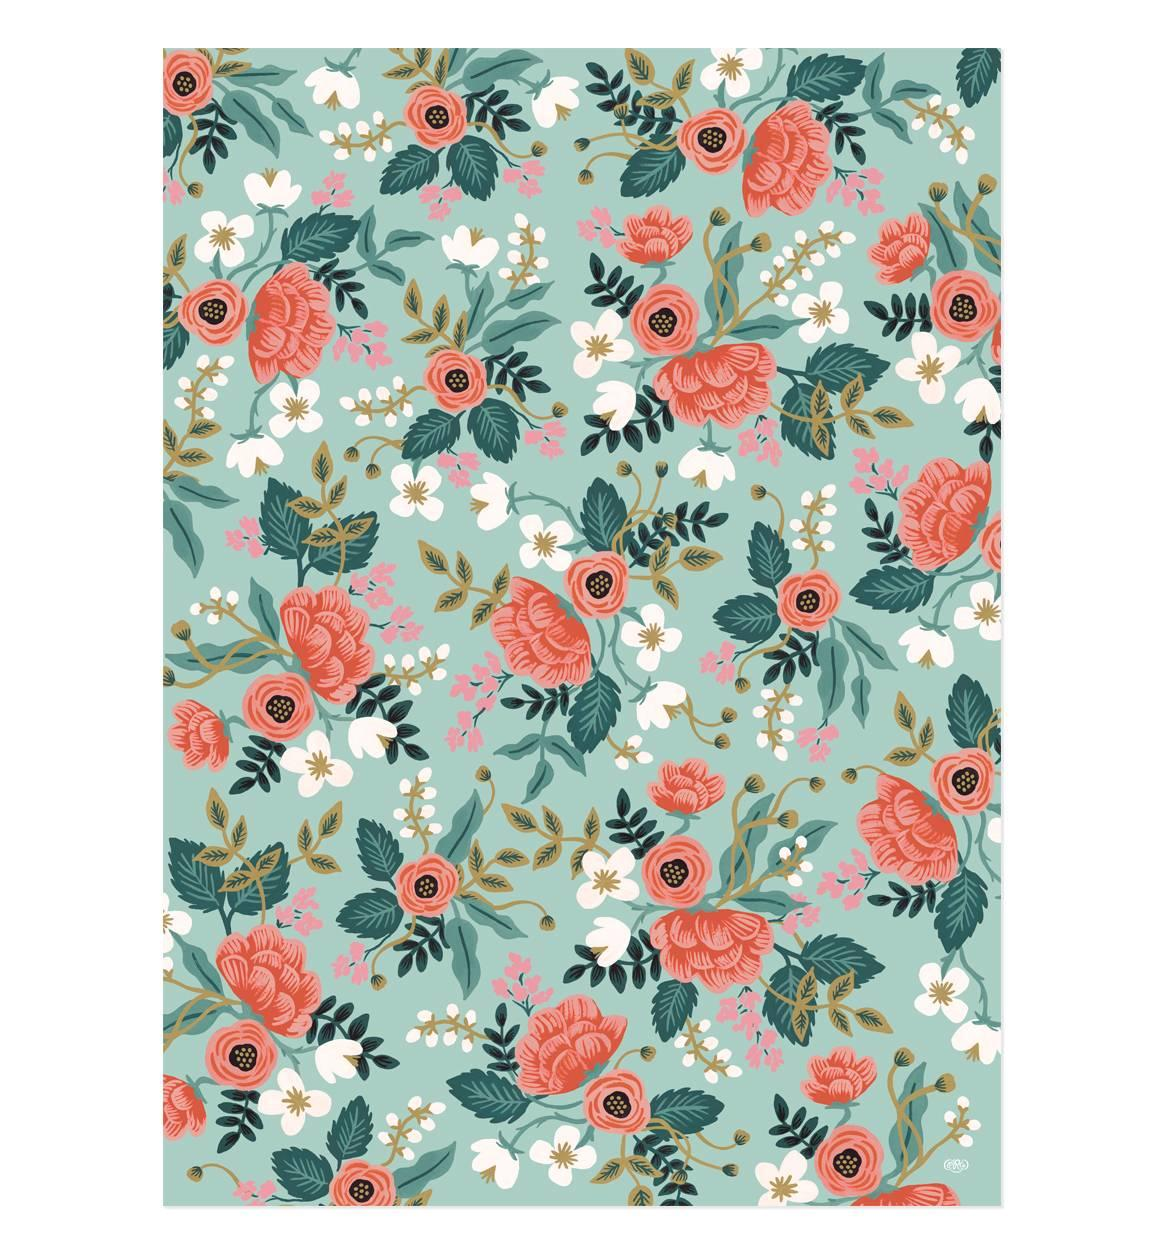 Birch Wrapping Sheets By Rifle Paper Co From Rifle Paper Co